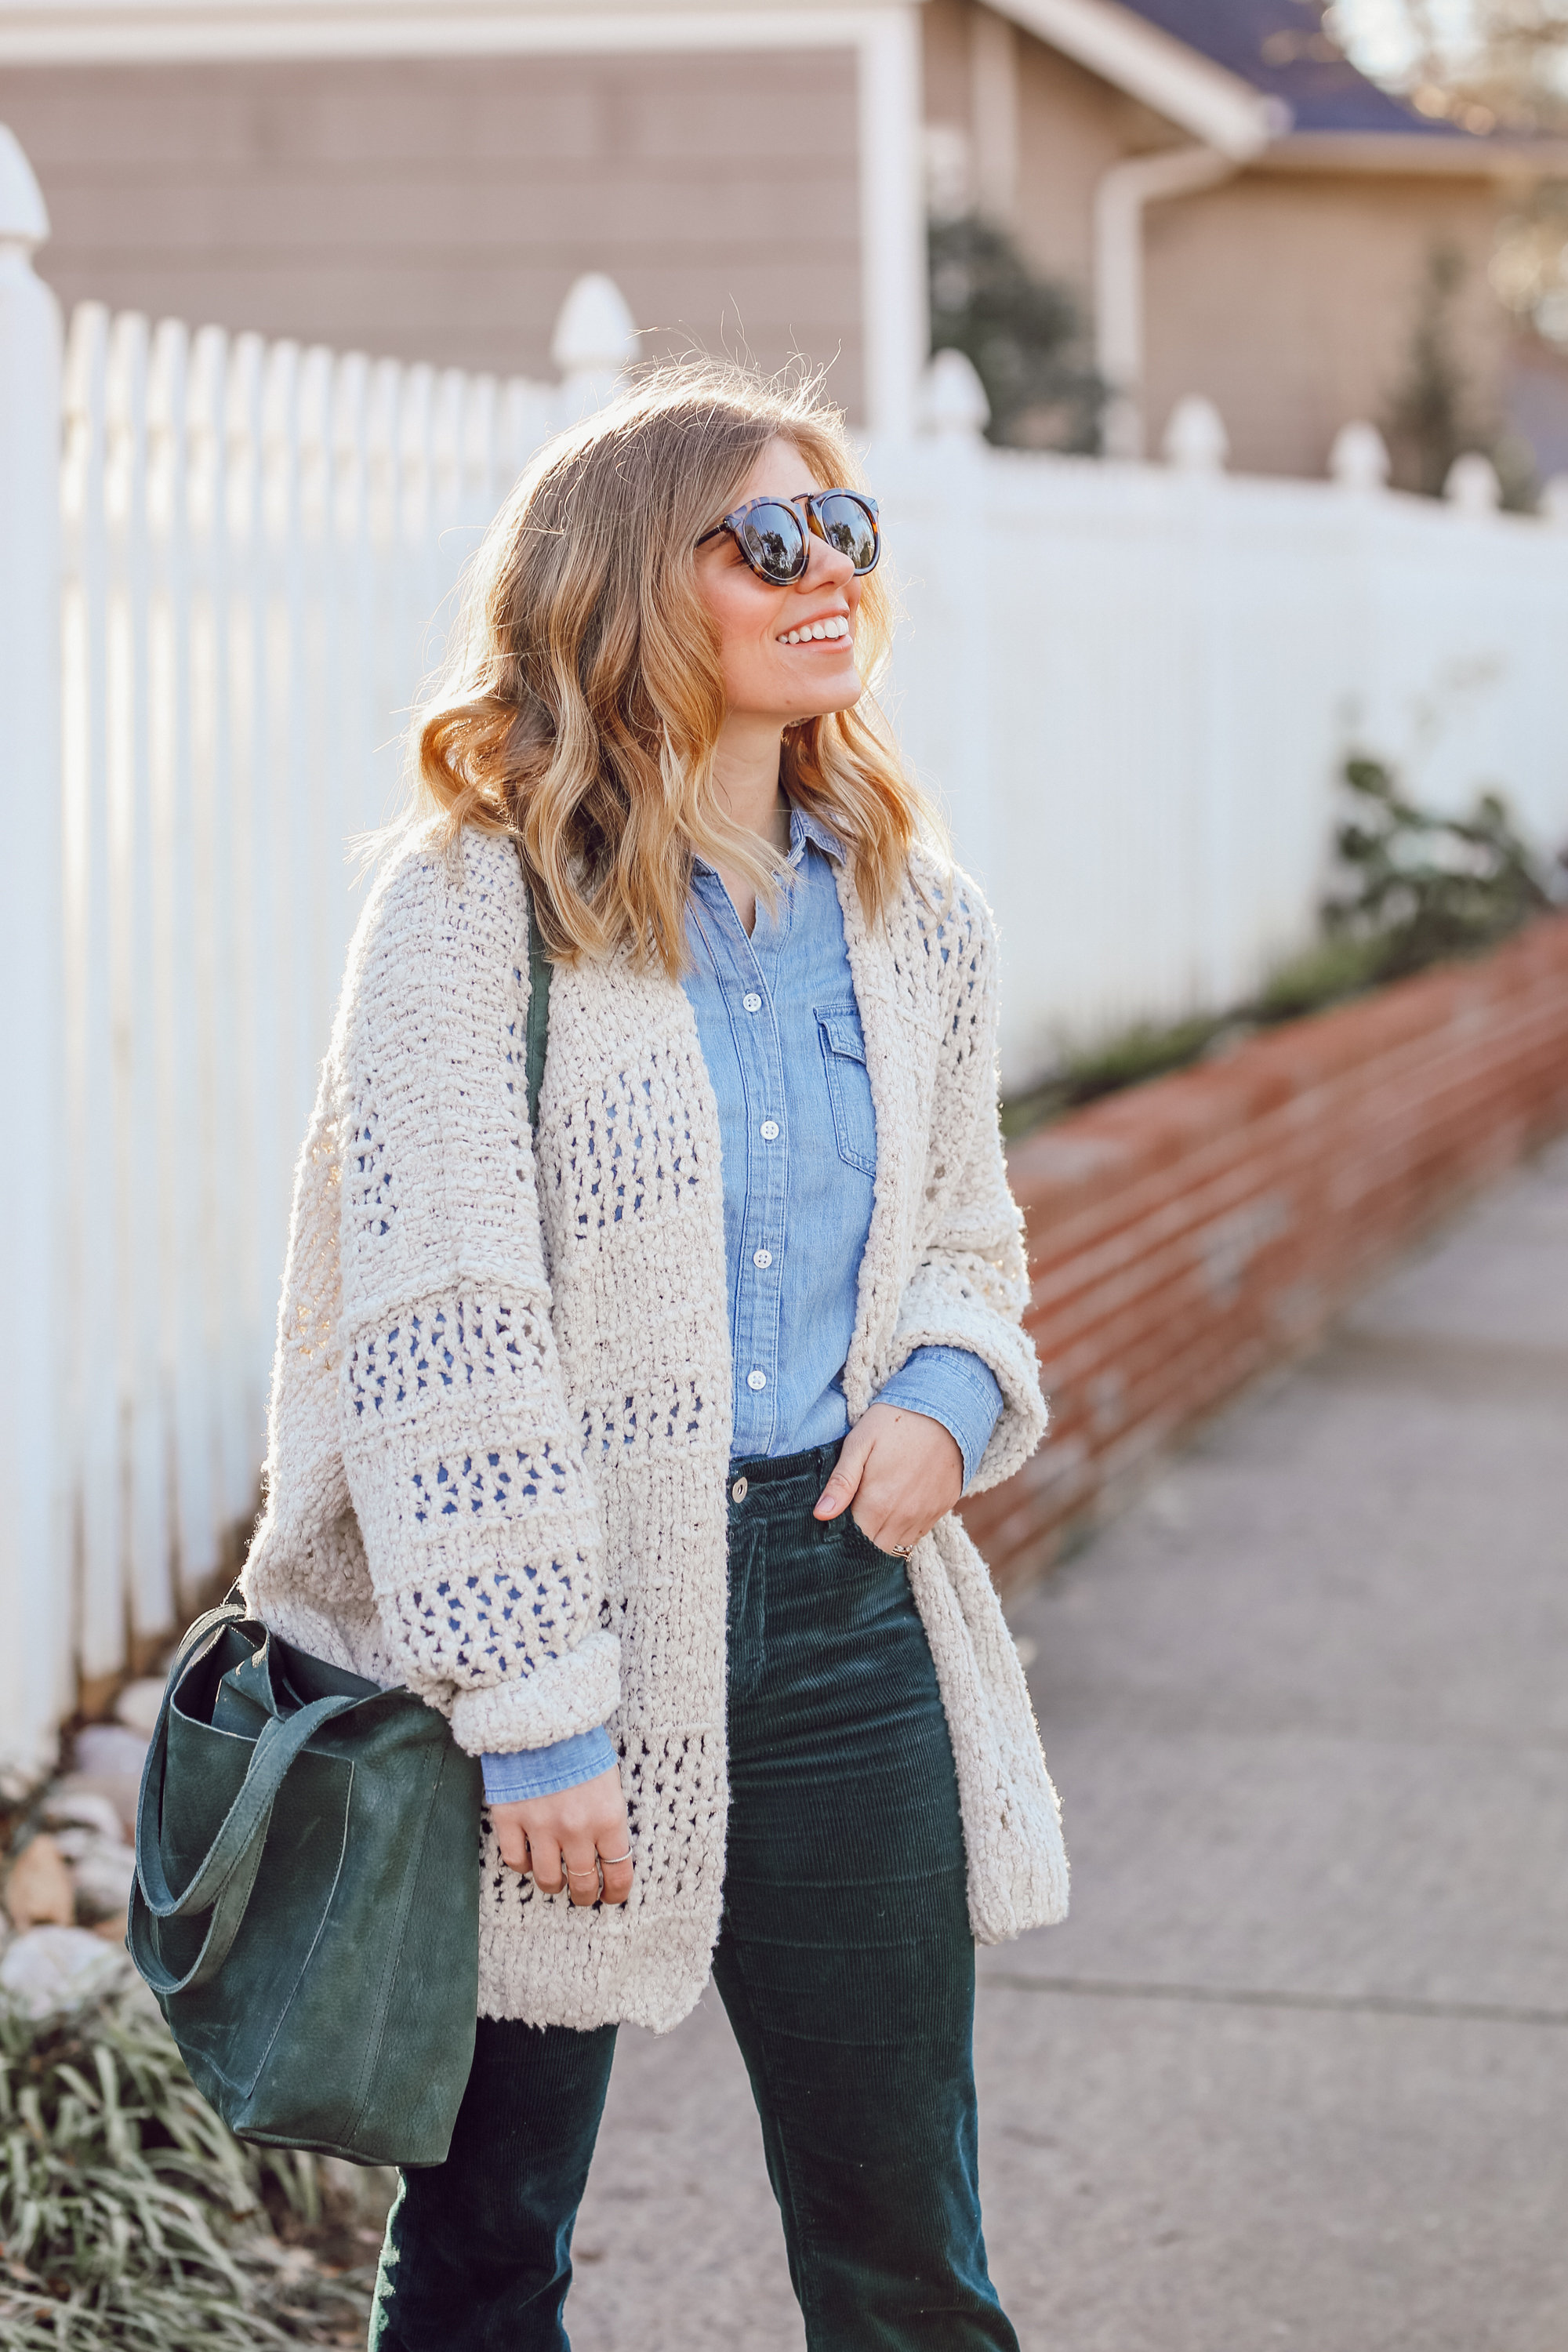 How to Pull off the 70s Trend in 2019 | Free People Saturday Morning Cardigan | Louella Reese